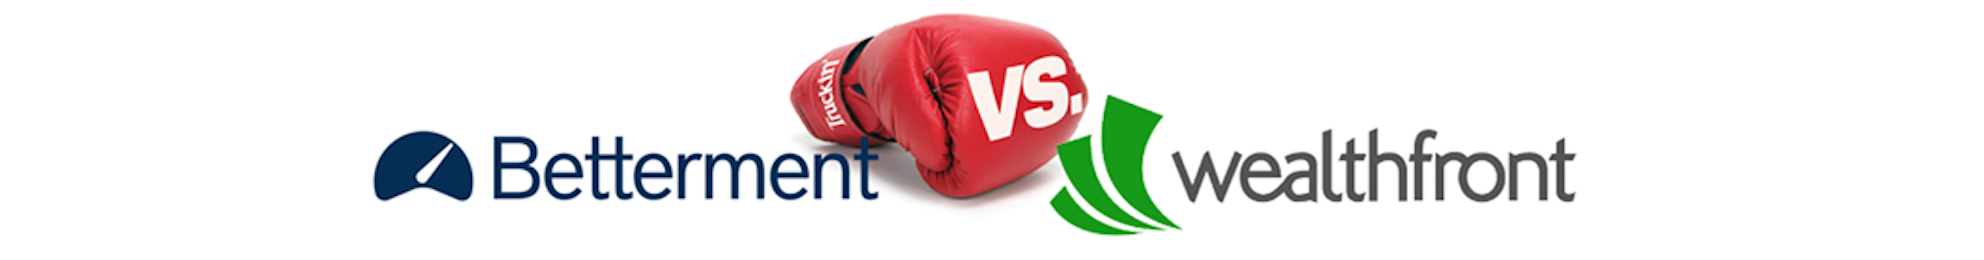 Betterment vs  Wealthfront: Which One Will Maximize Your Wealth More